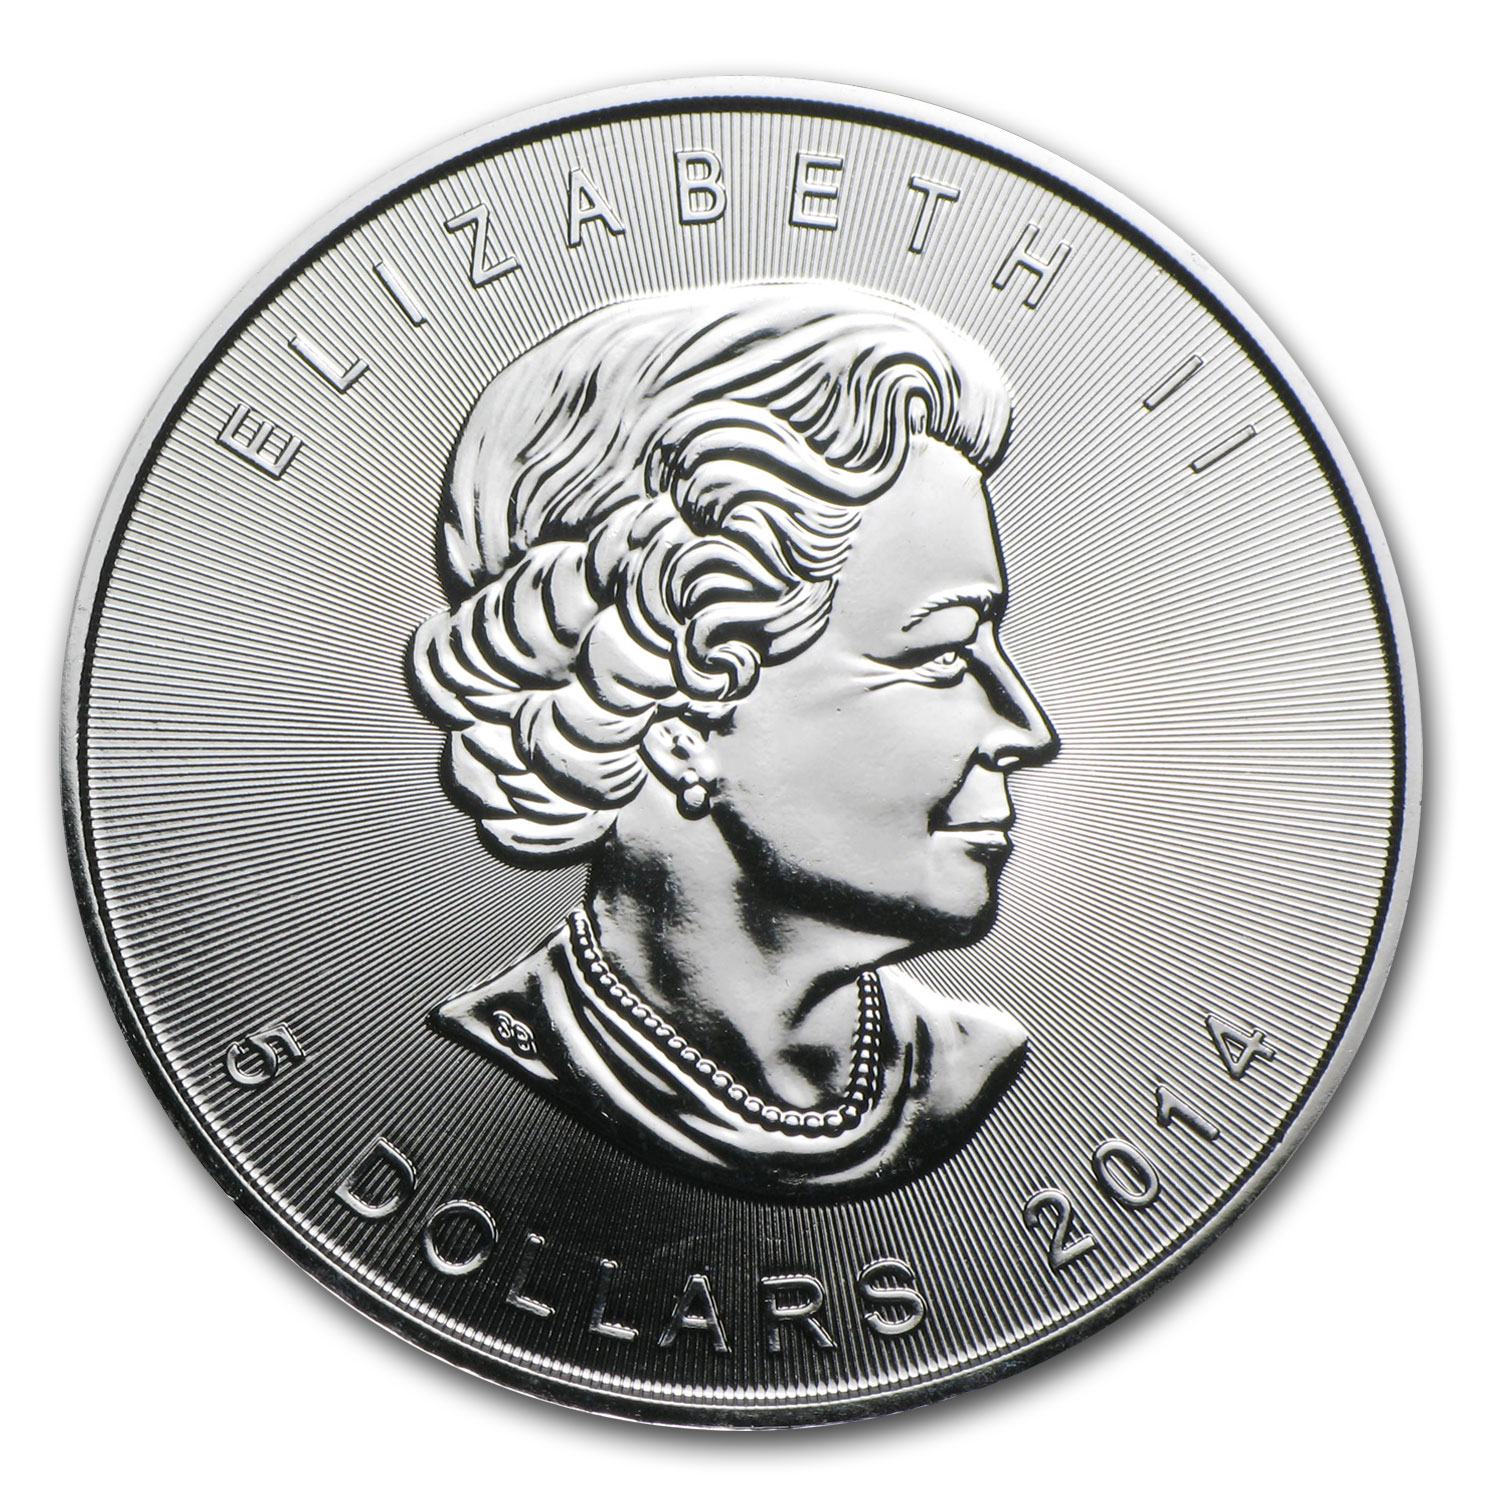 2014 1 oz Silver Canadian Maple Leaf - Reverse Struck Mint Error